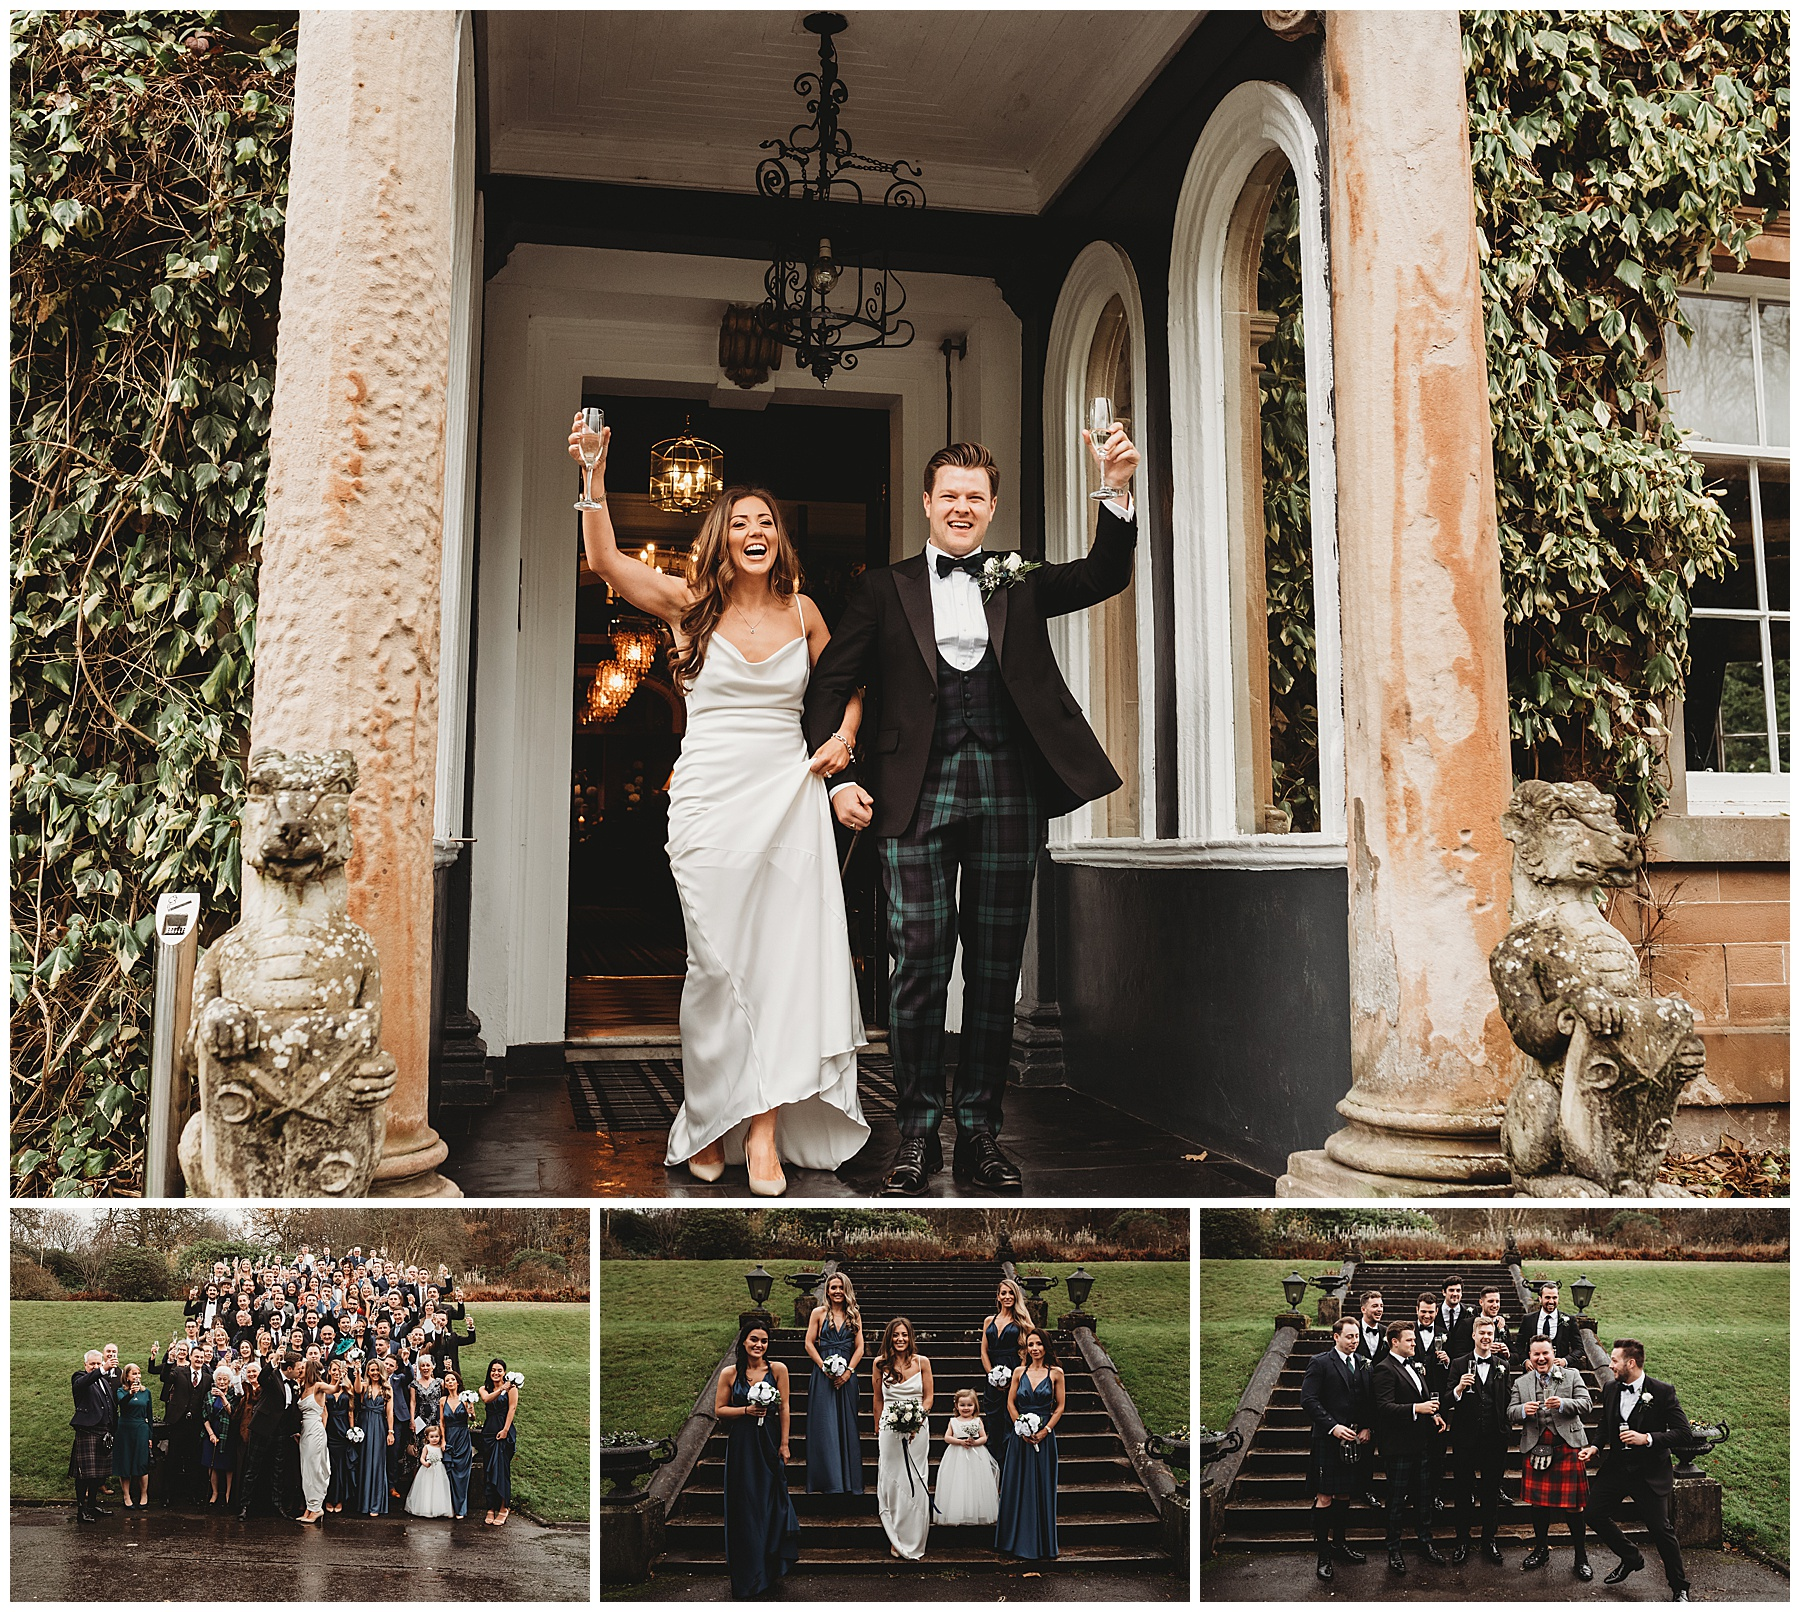 Auchen Castle Wedding